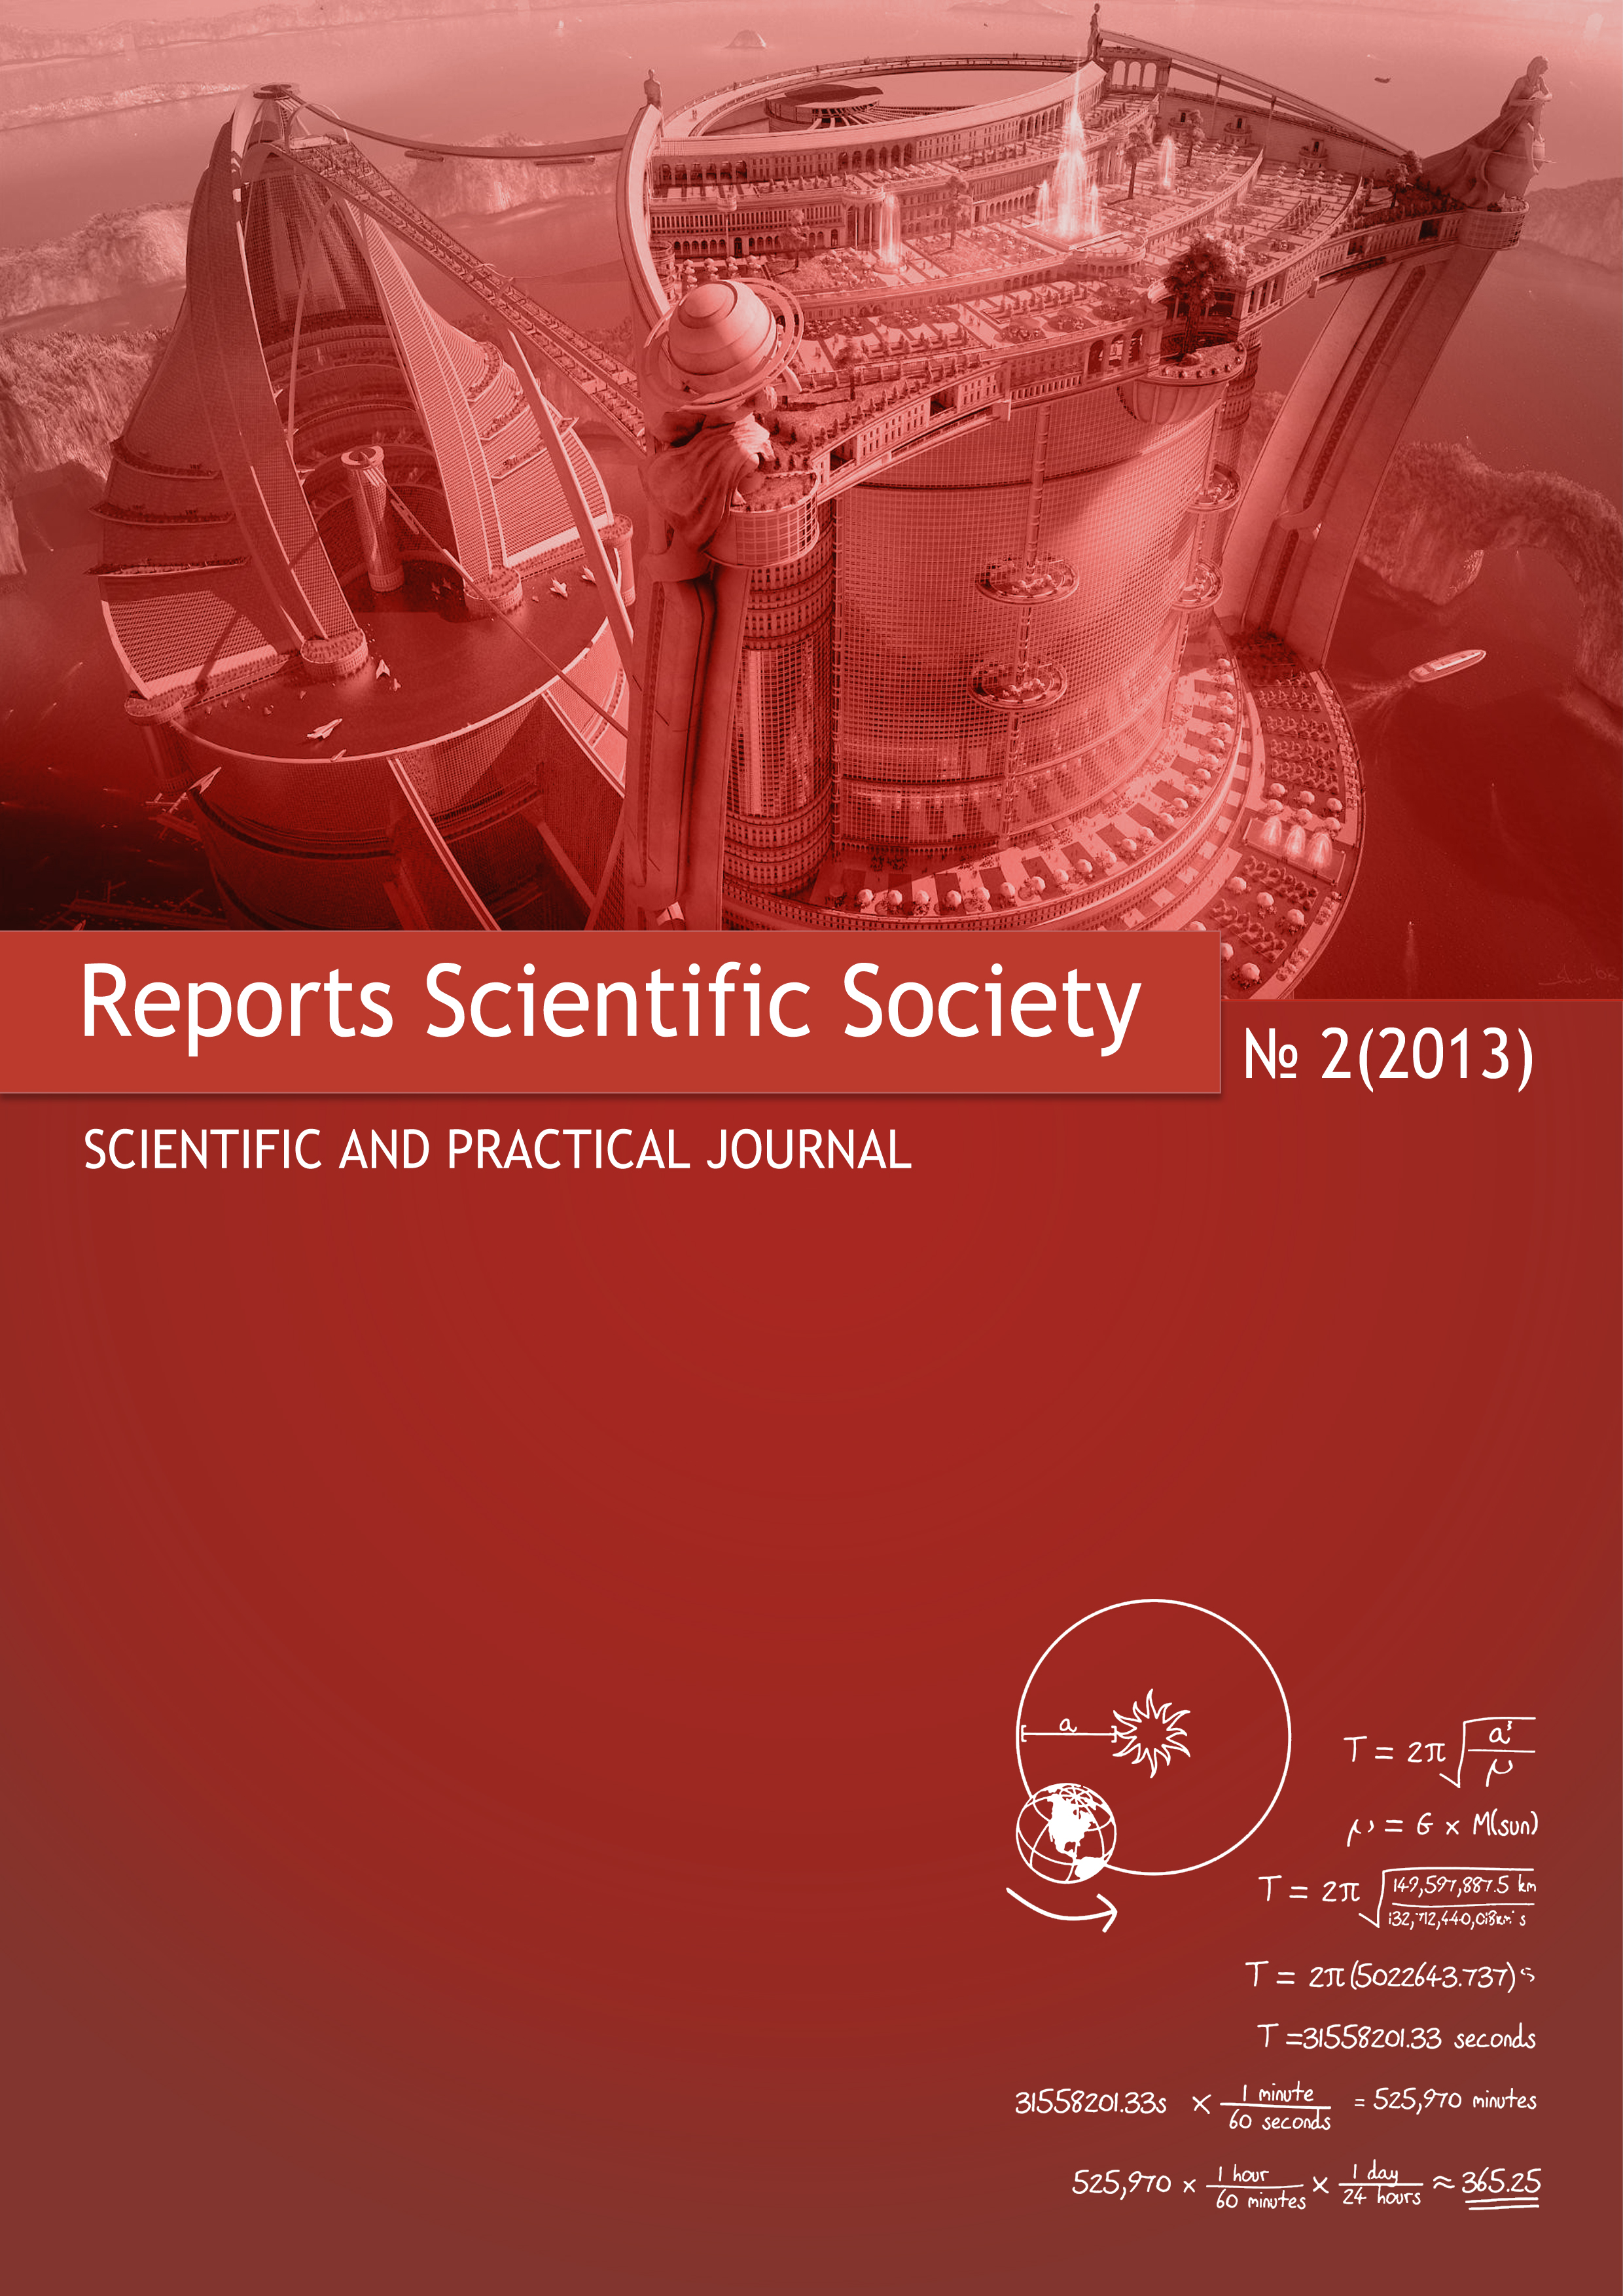 «Reports Scientific Society» №1 2013